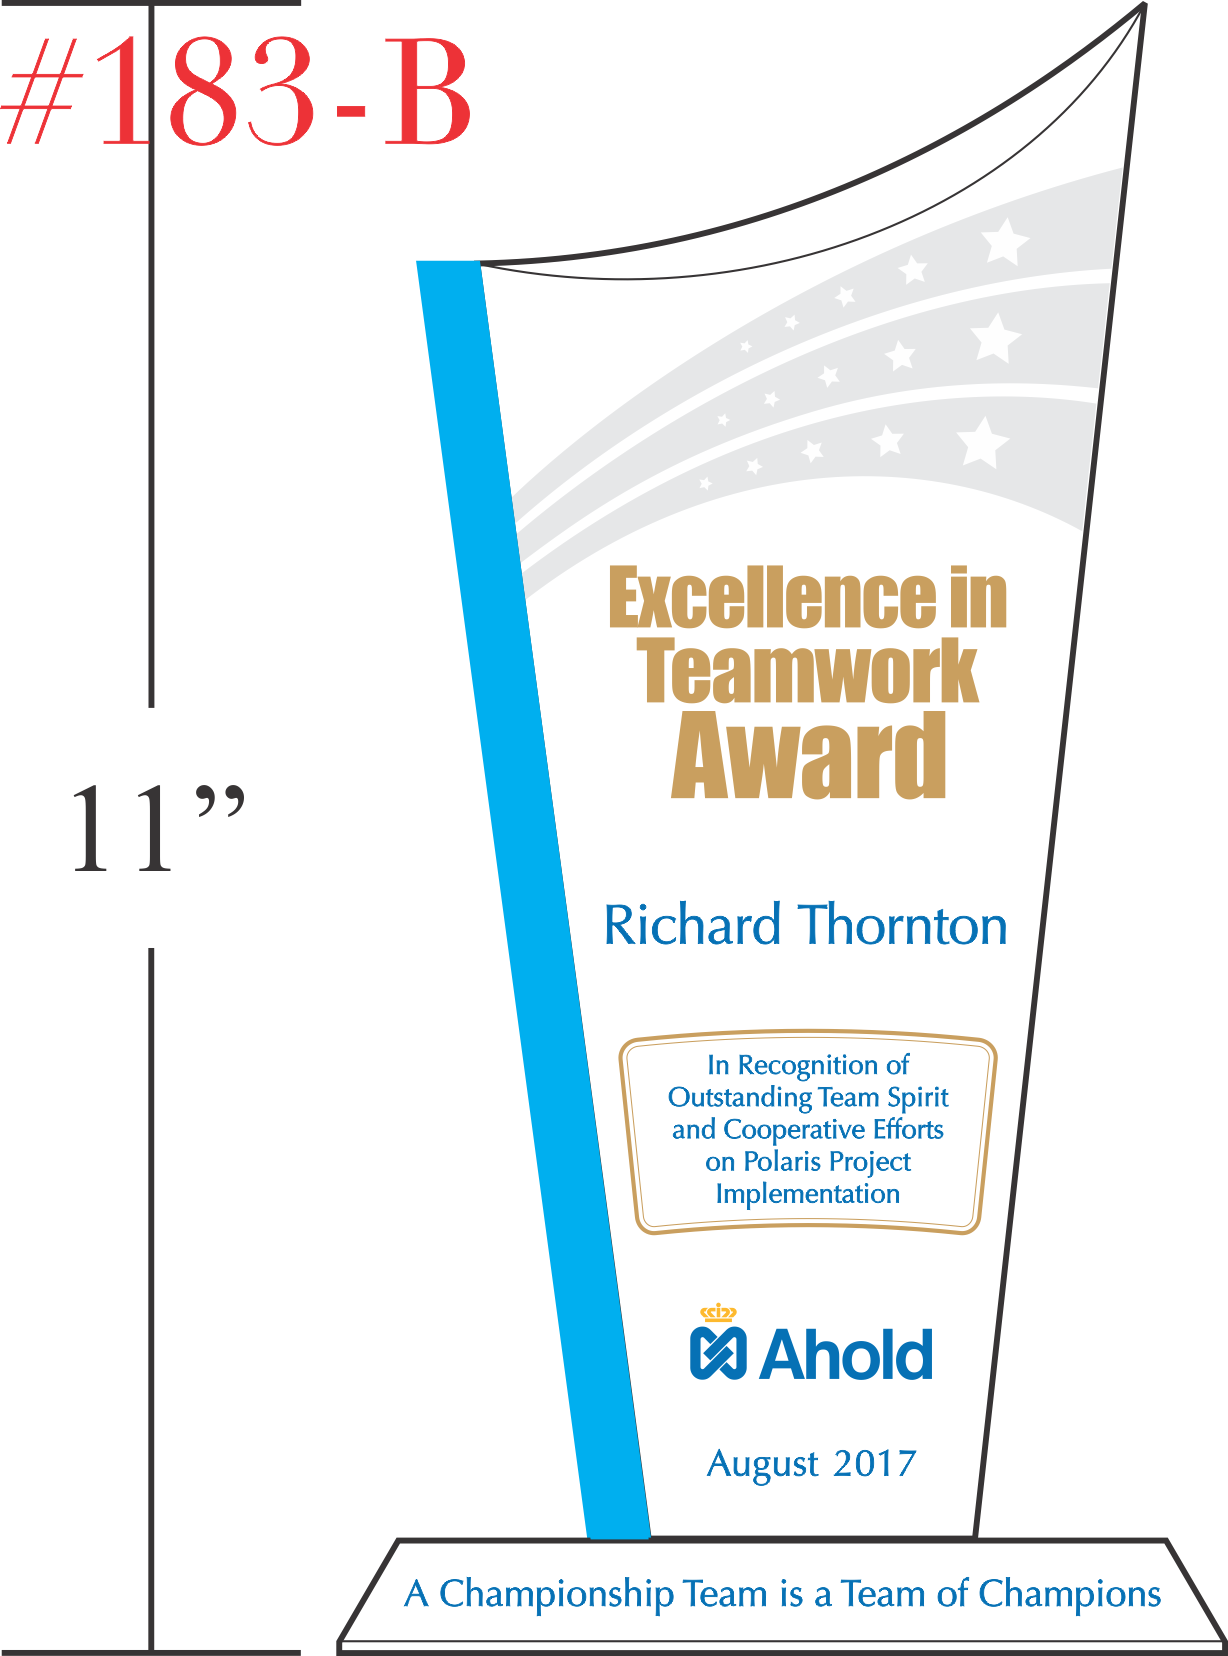 Excellence in Teamwork Award